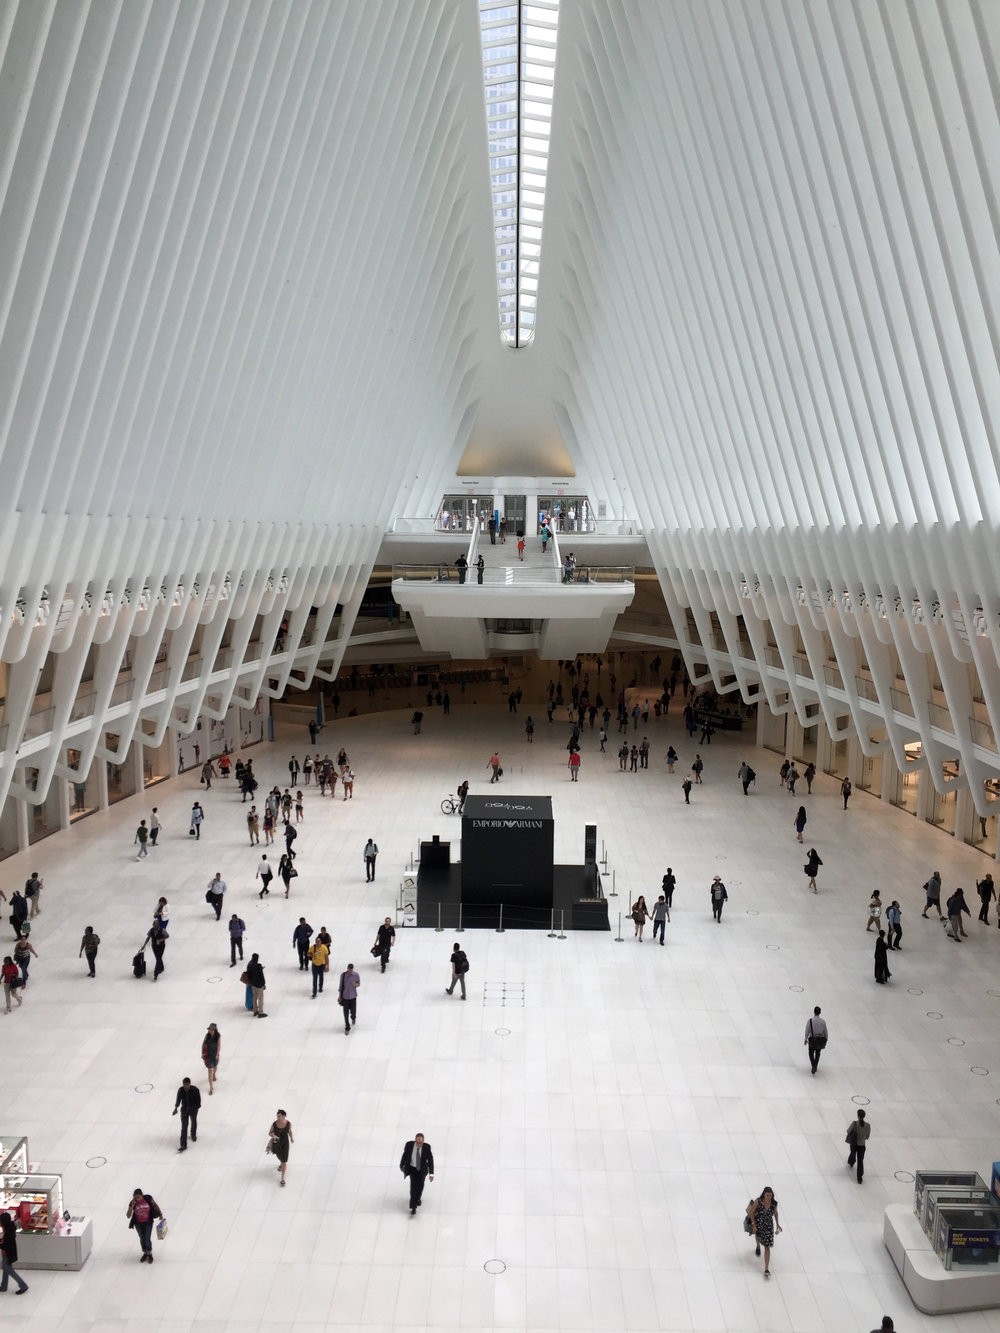 The Oculus, World Trade Center